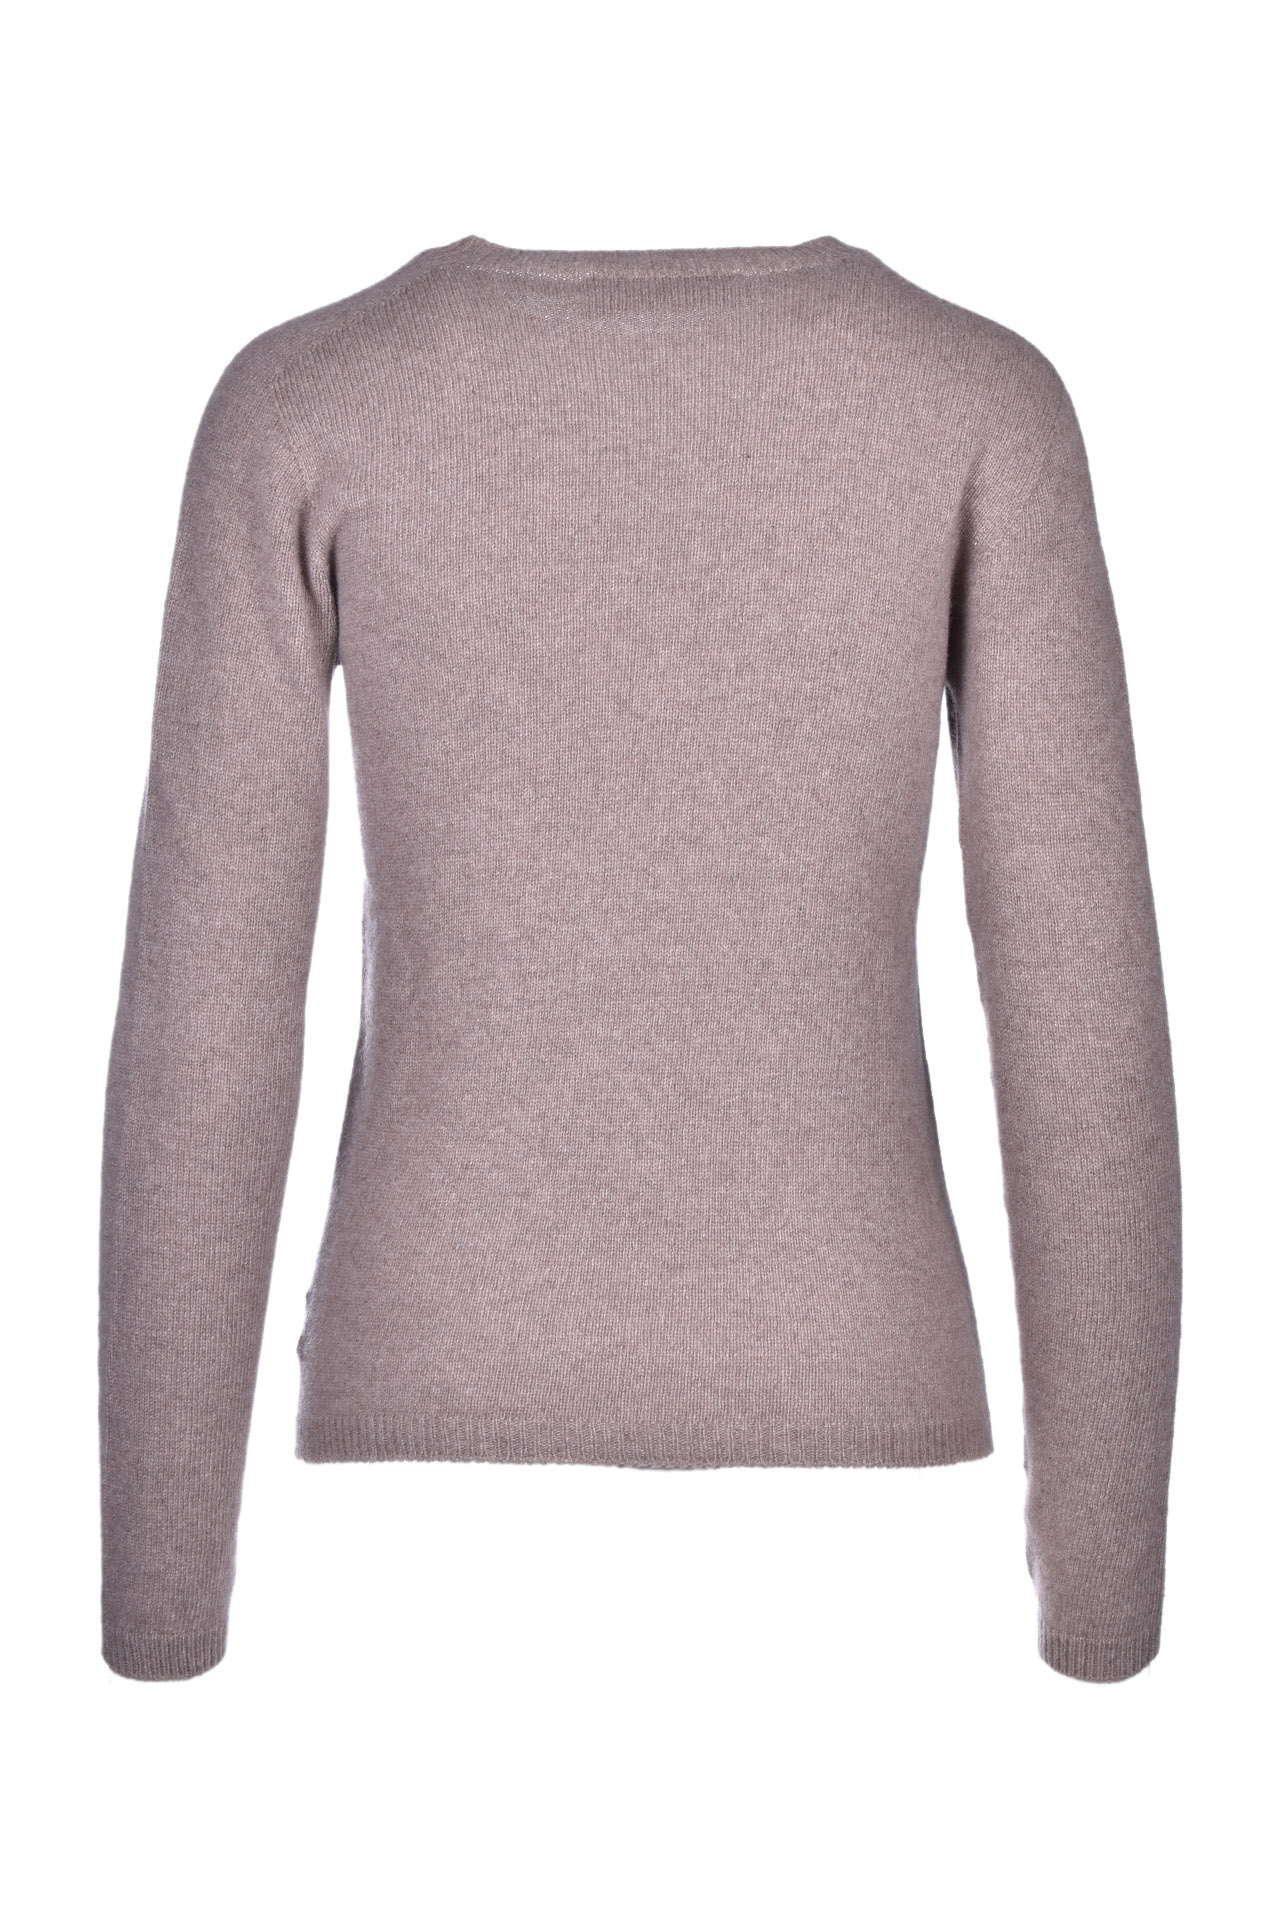 Crewneck sweater in cachmere JUCCA | Sweaters | J32110001678